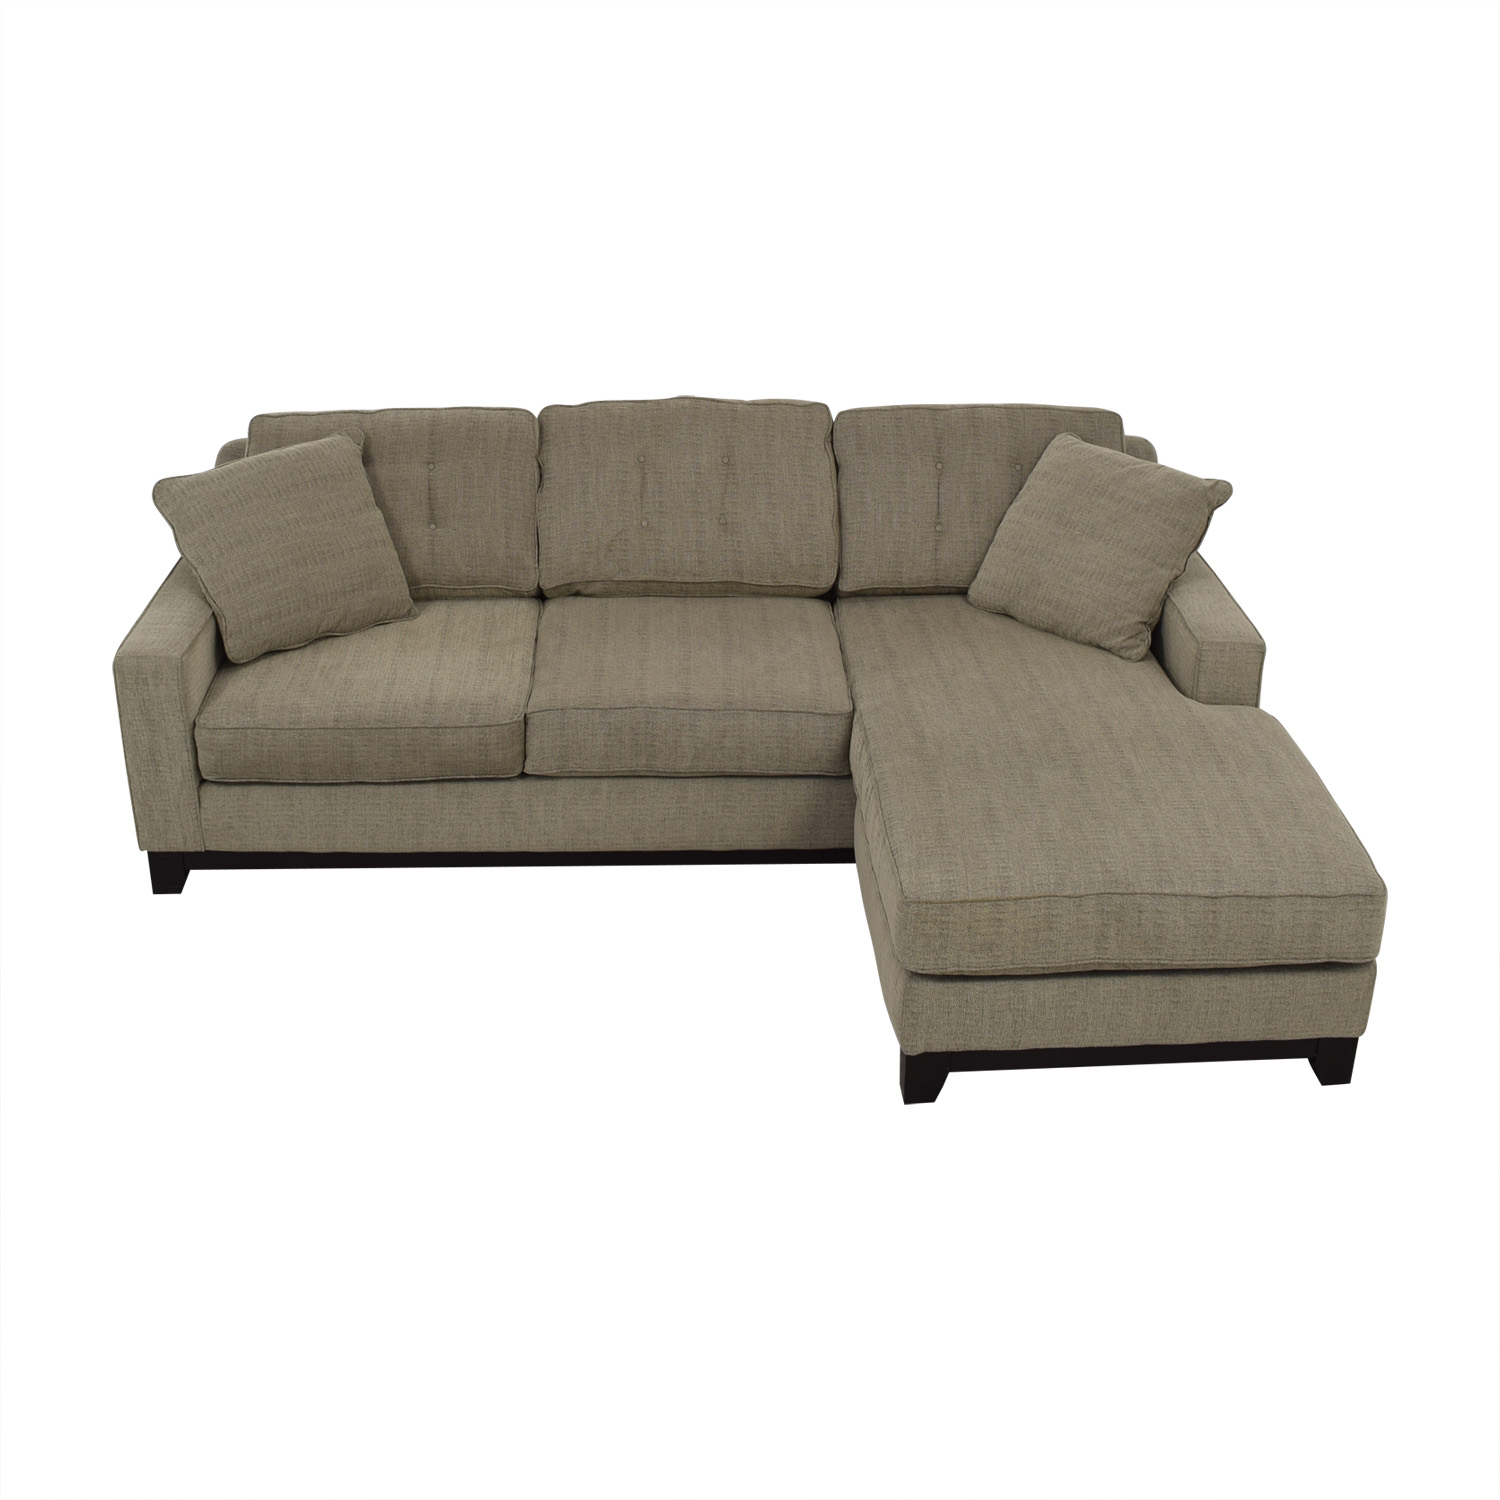 Macy's Macy's Gray Chaise Sectional grey